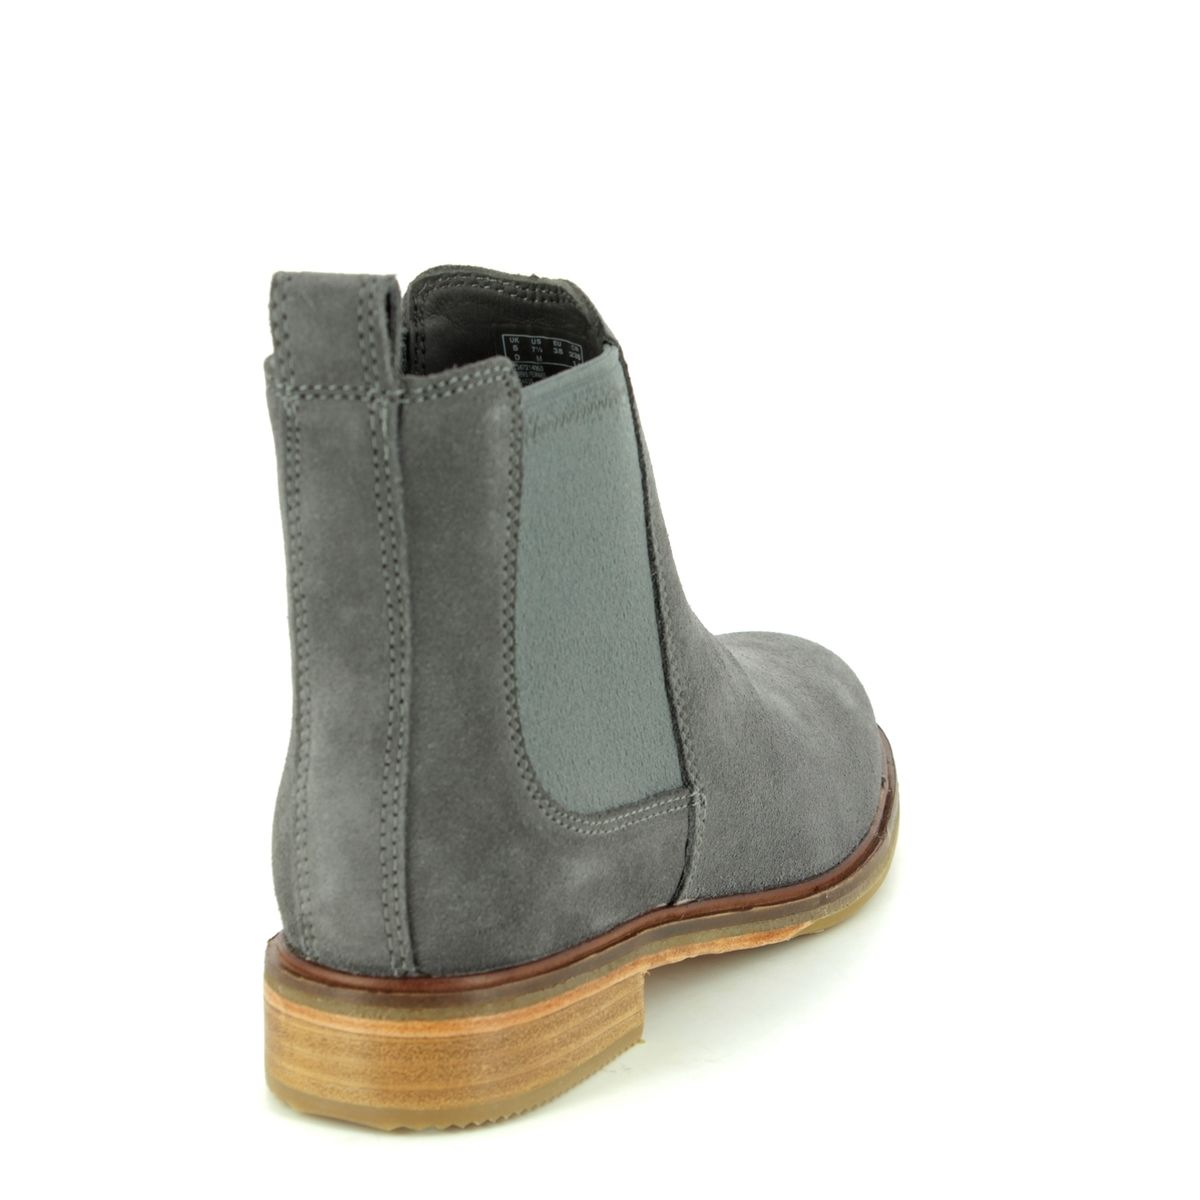 640b3920bfdd Clarks Chelsea Boots - Grey suede - 3672 14D CLARKDALE ARLO